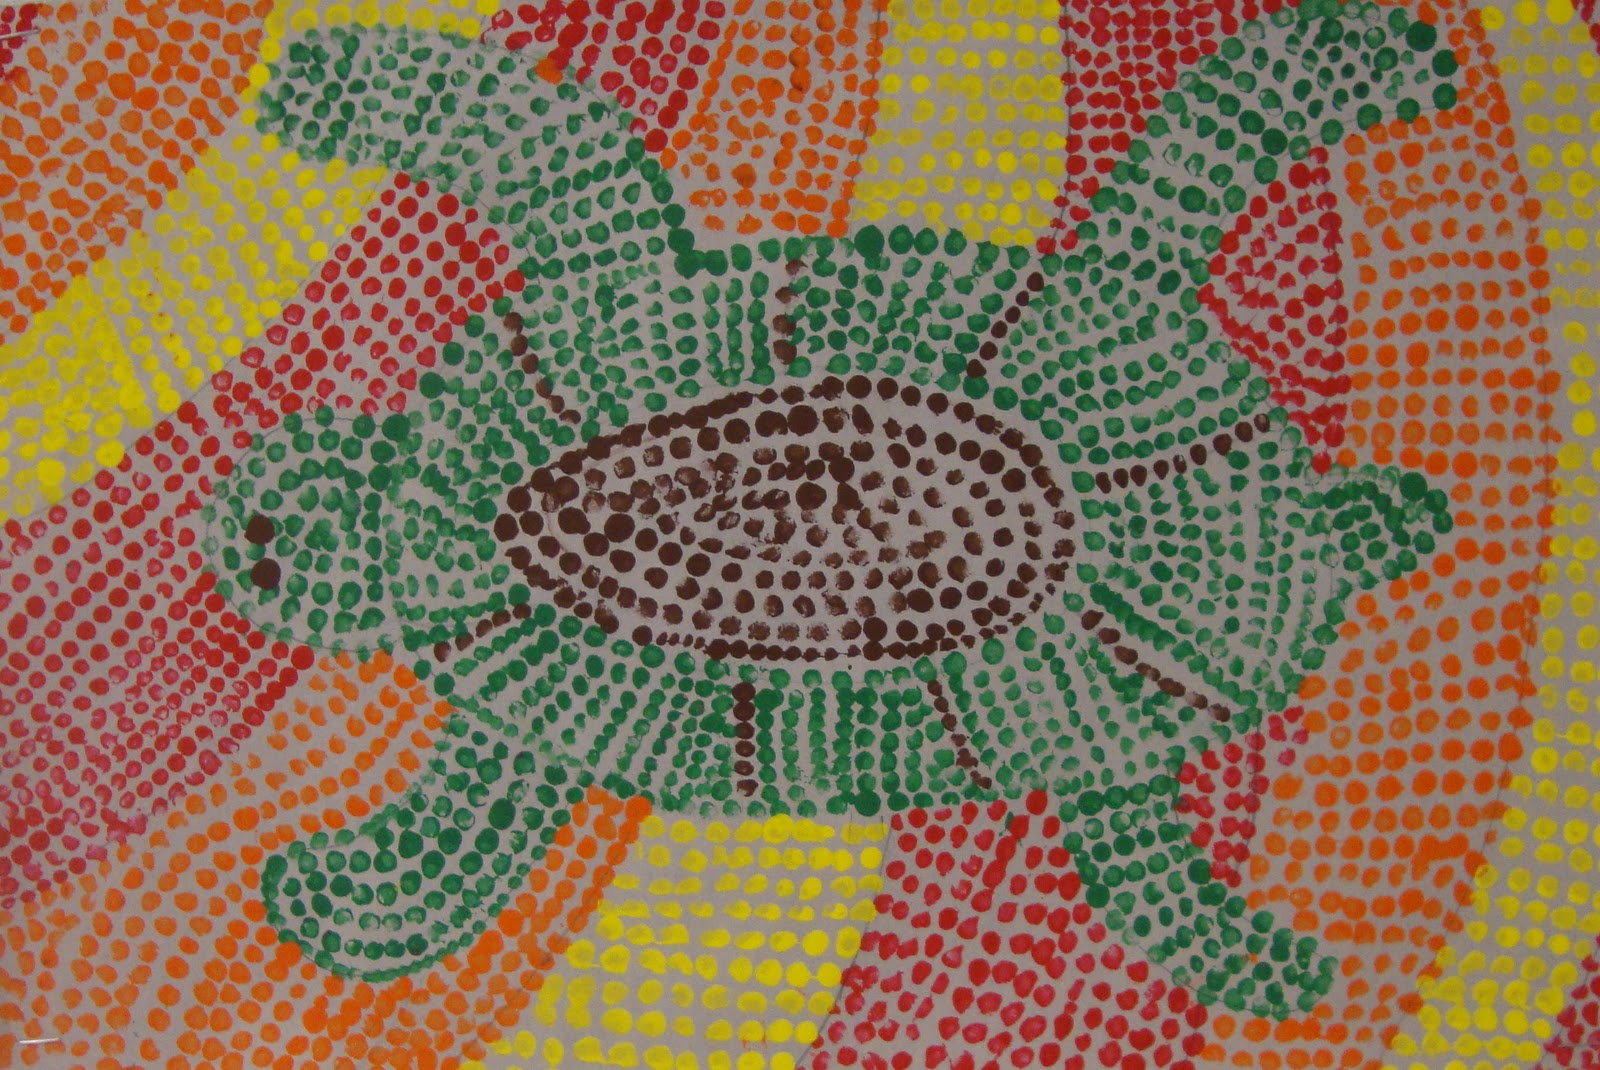 Aboriginal Dot Paintings Animals http://art-paper-scissors.blogspot.com/2012/01/aboriginal-dot-paintings.html